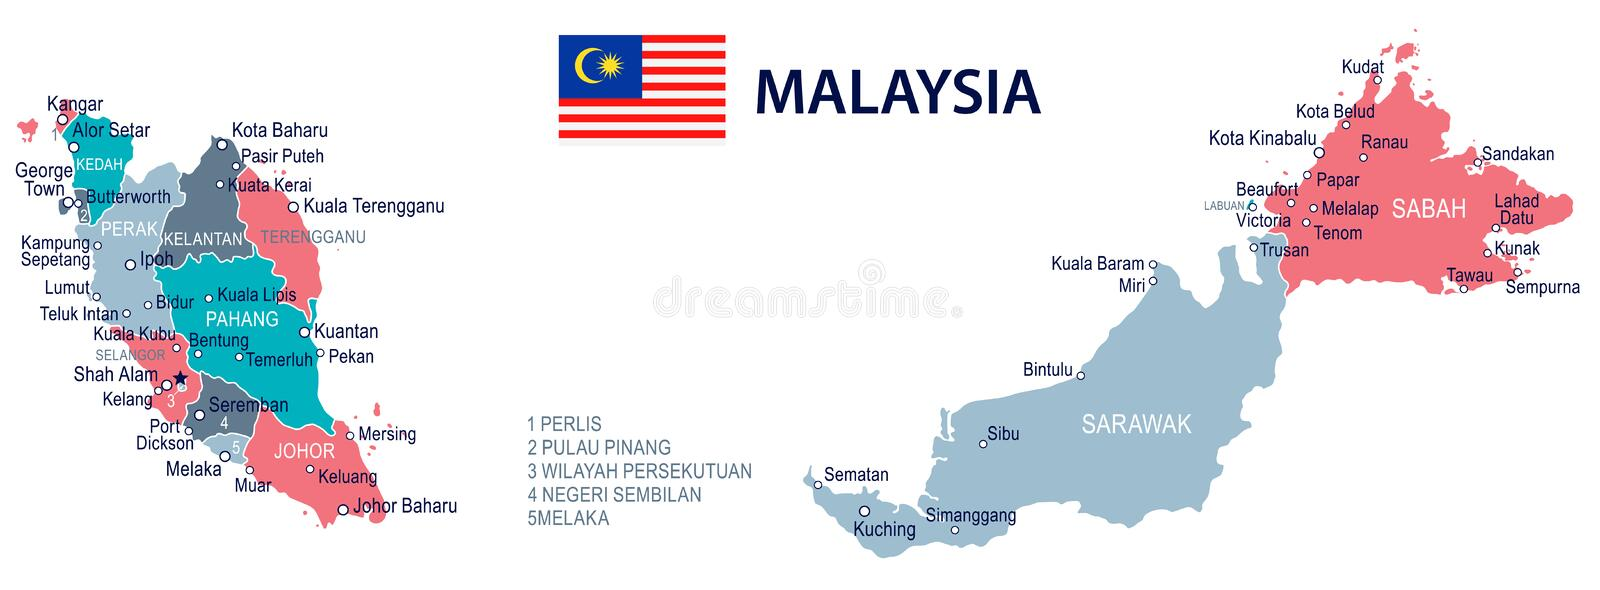 Malaysia Map And Flag Illustration Stock Illustration